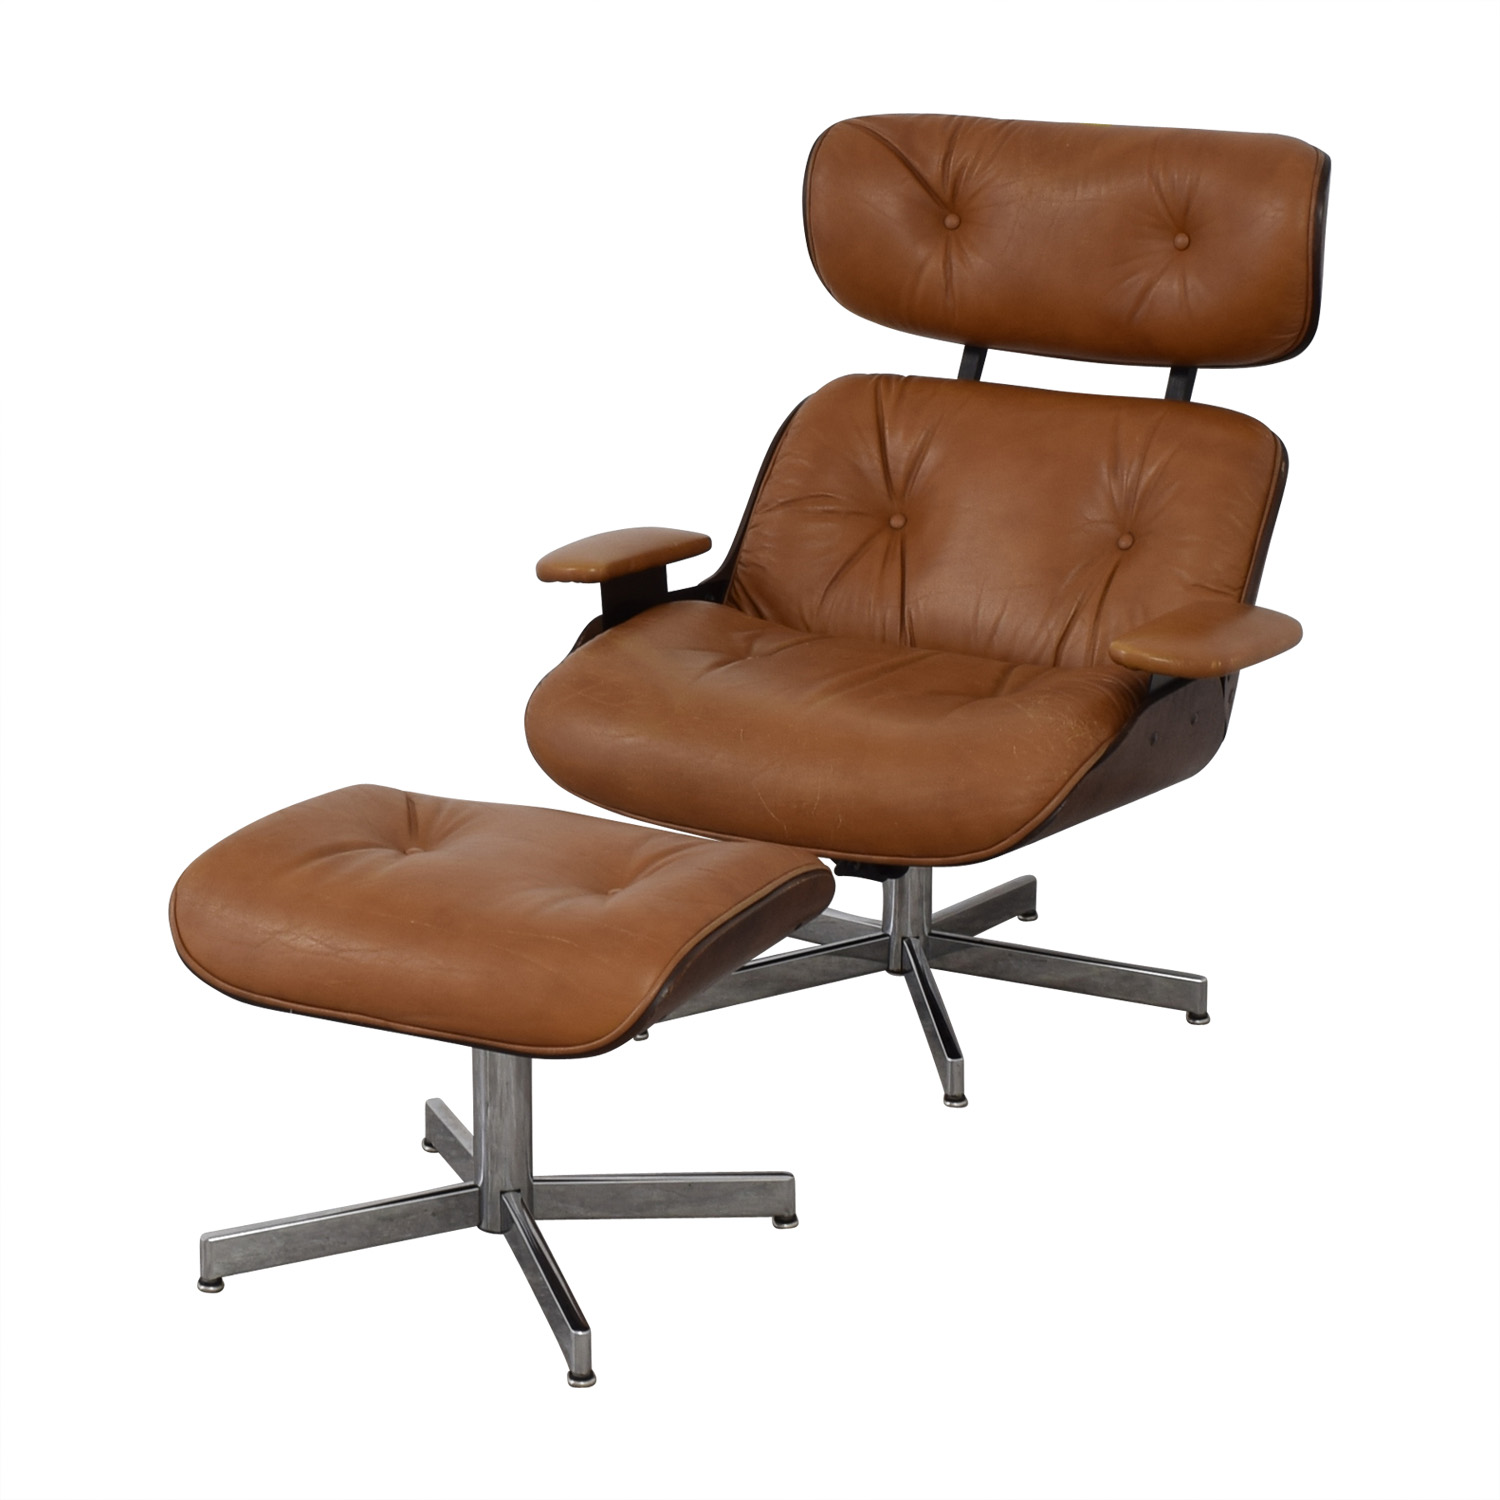 shop Plycraft Eames Style Lounge Chair and Ottoman Plycraft Chairs